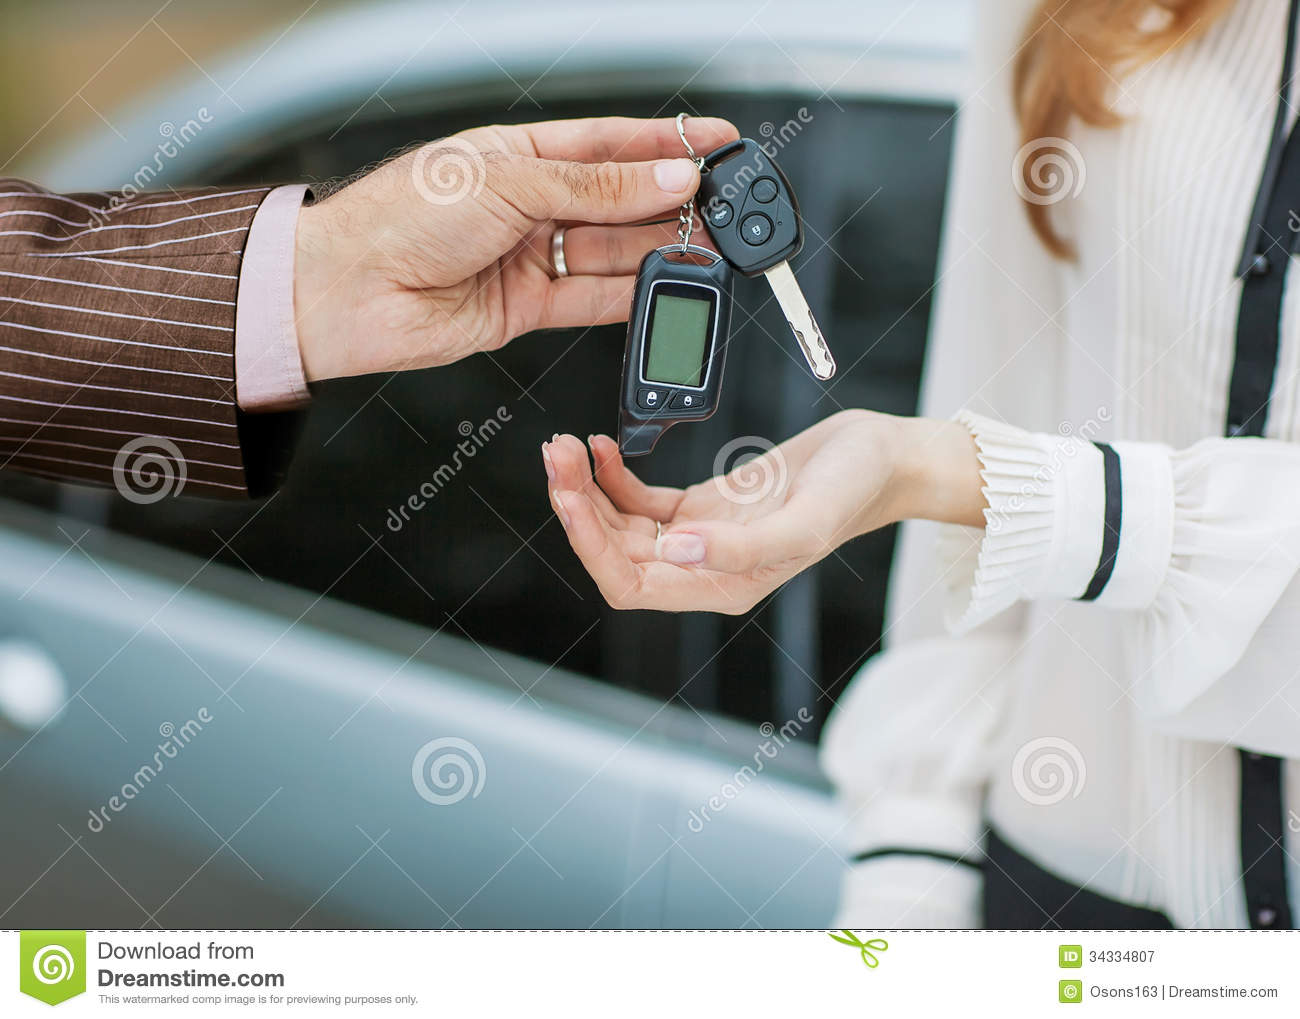 Expensive Car For Sale Or Gift Royalty Free Stock Image: Male Hand Giving Car Key To Female Hand. Royalty Free